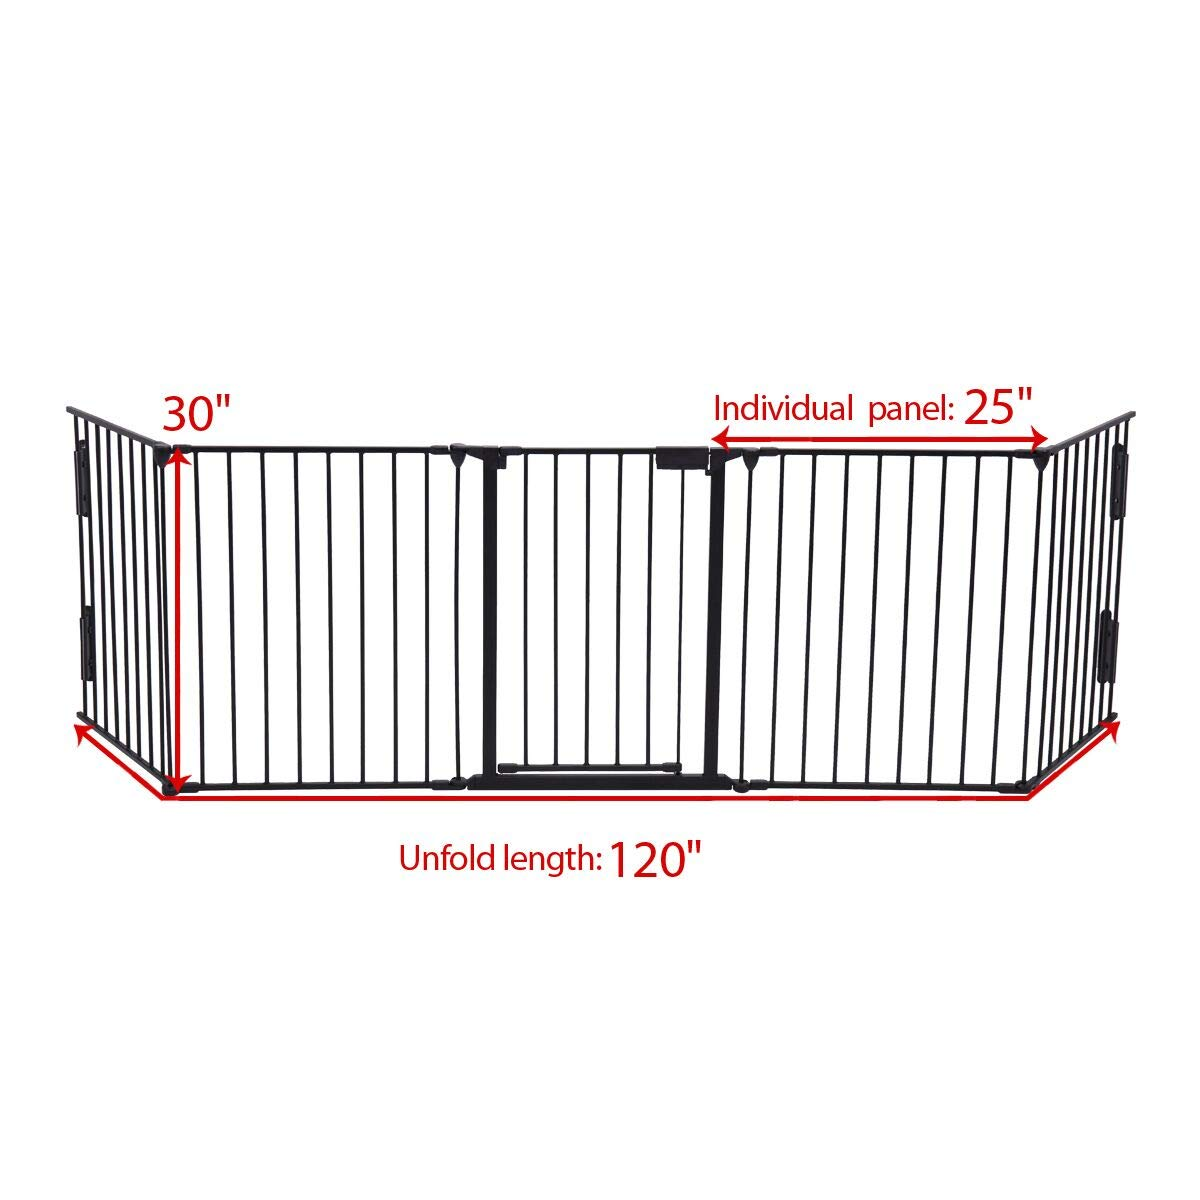 JAXPETY 25''x 30'' 5 Panel Baby Safety Fence Hearth Gate BBQ Fire Gate Fireplace Metal Plastic Pet Dog Cat by JAXPETY (Image #2)